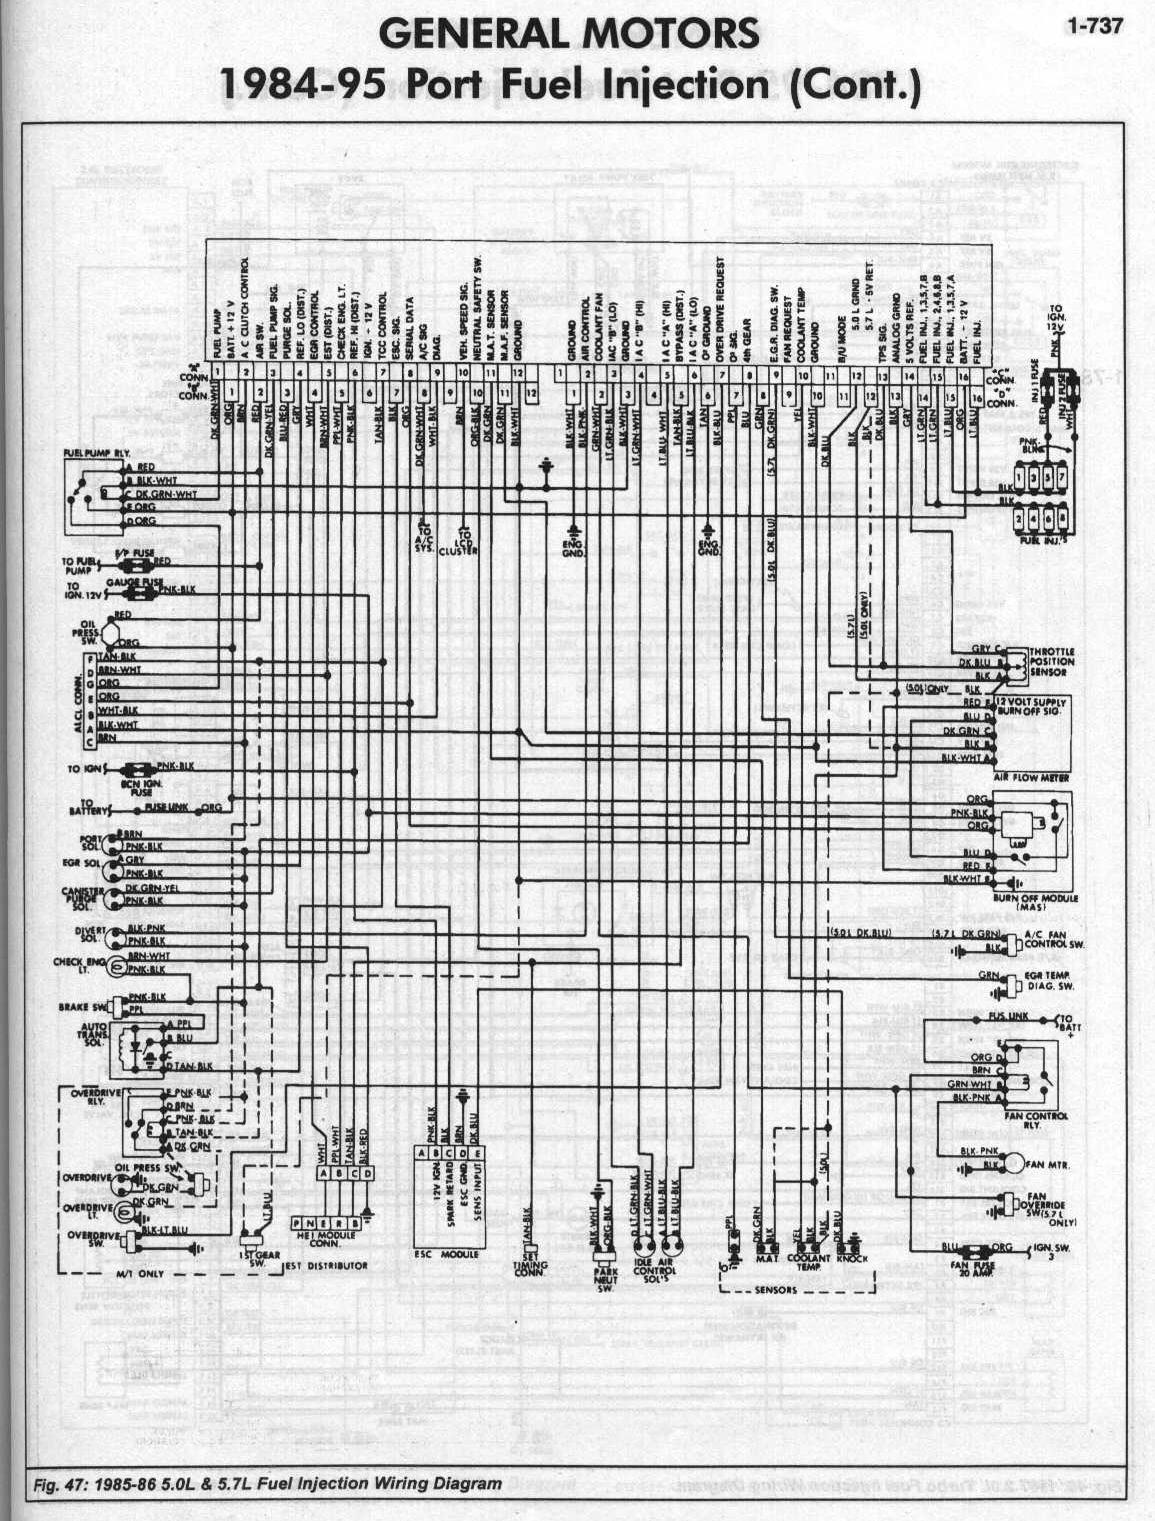 hight resolution of 85 ecm wiring maf mas diagram copy1 copy2 86